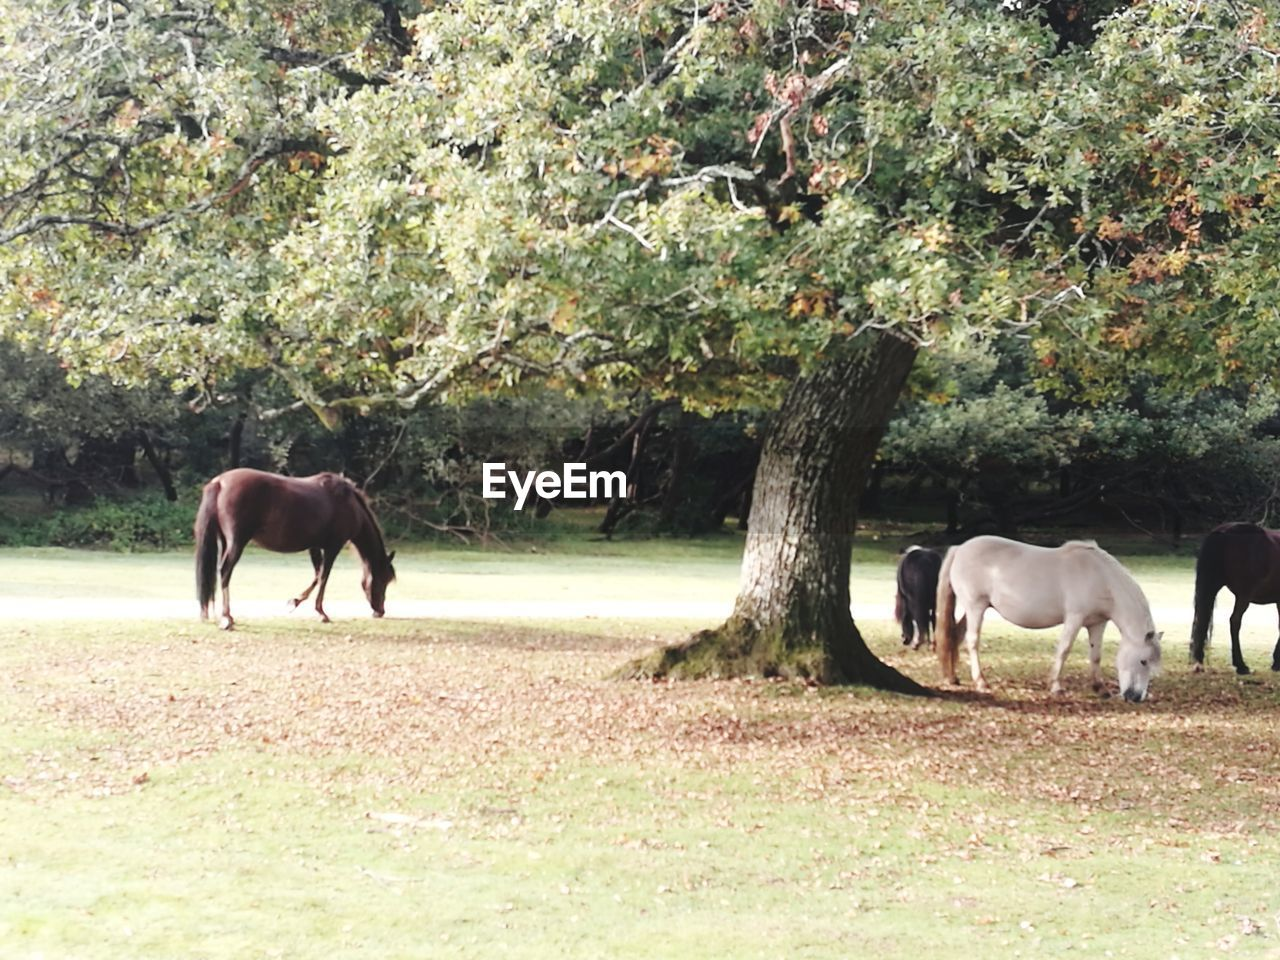 horse, animal themes, mammal, domestic animals, tree, field, day, nature, livestock, grazing, young animal, no people, outdoors, full length